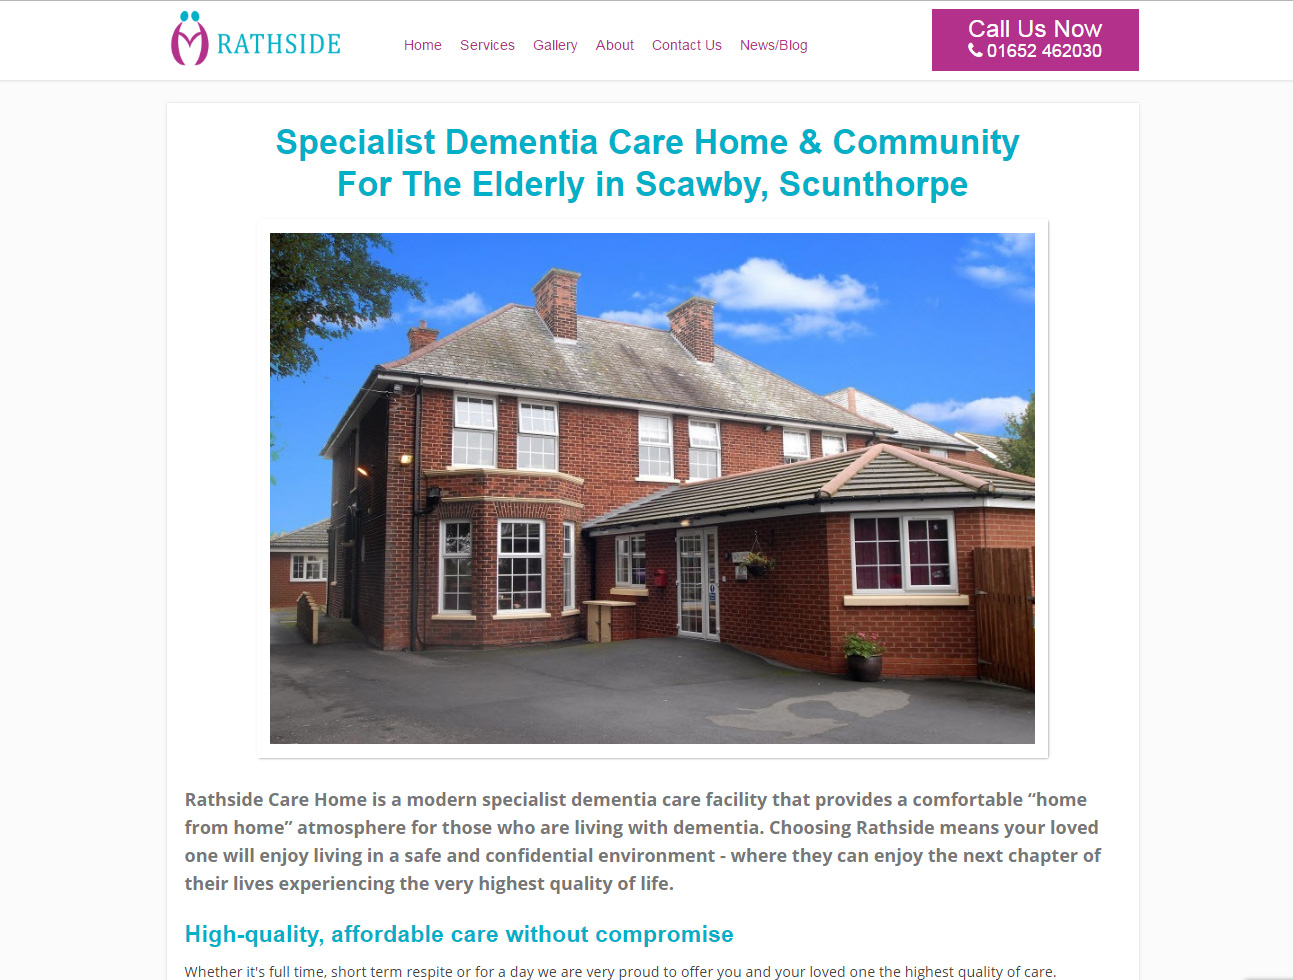 rathside-care-home